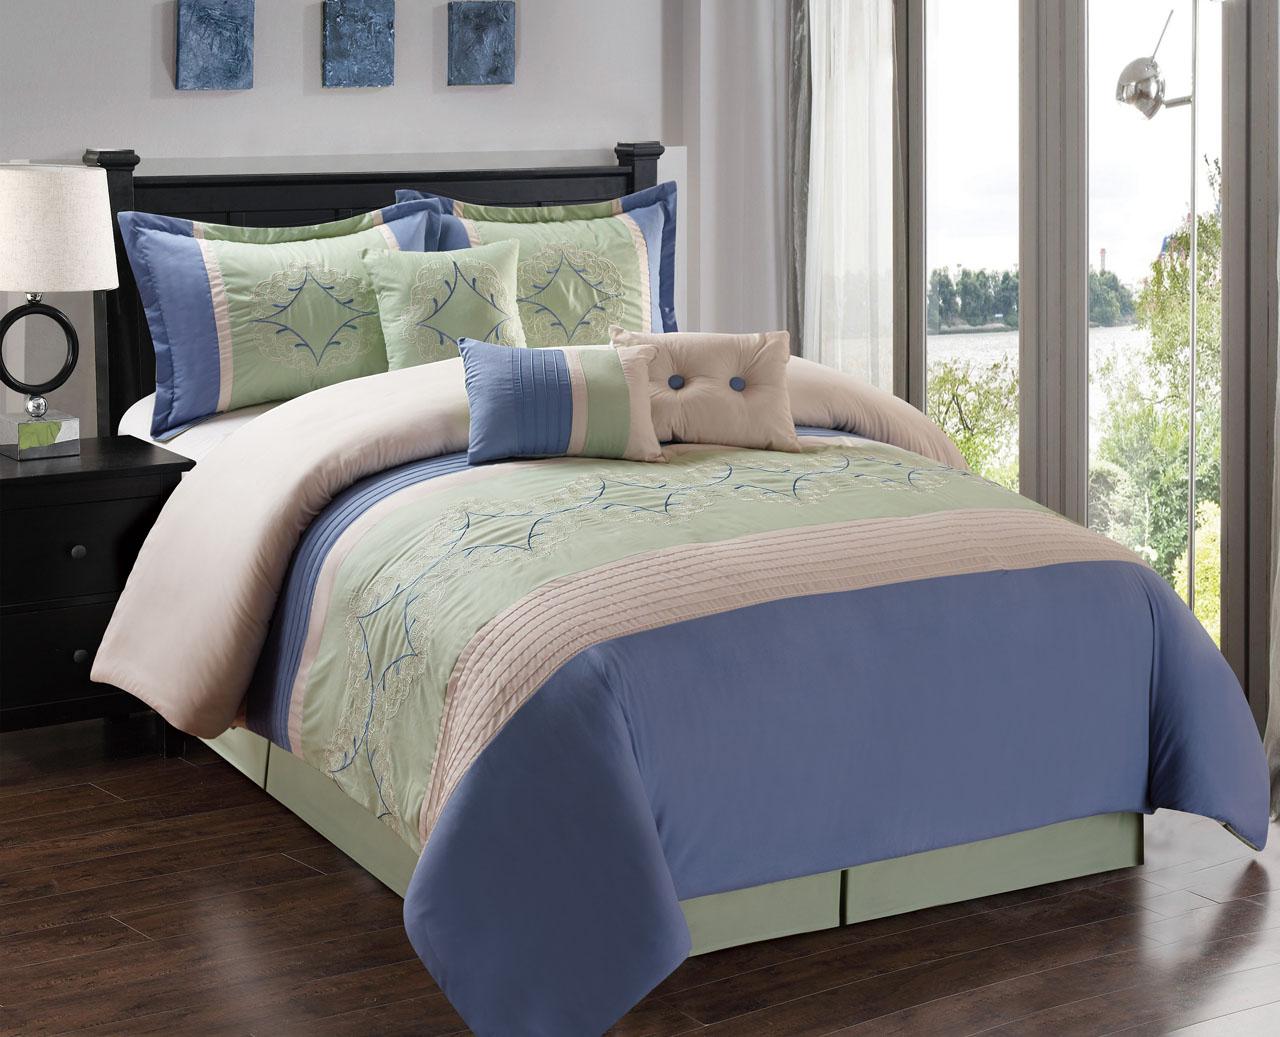 candice matching comforter curtains set sage piece available